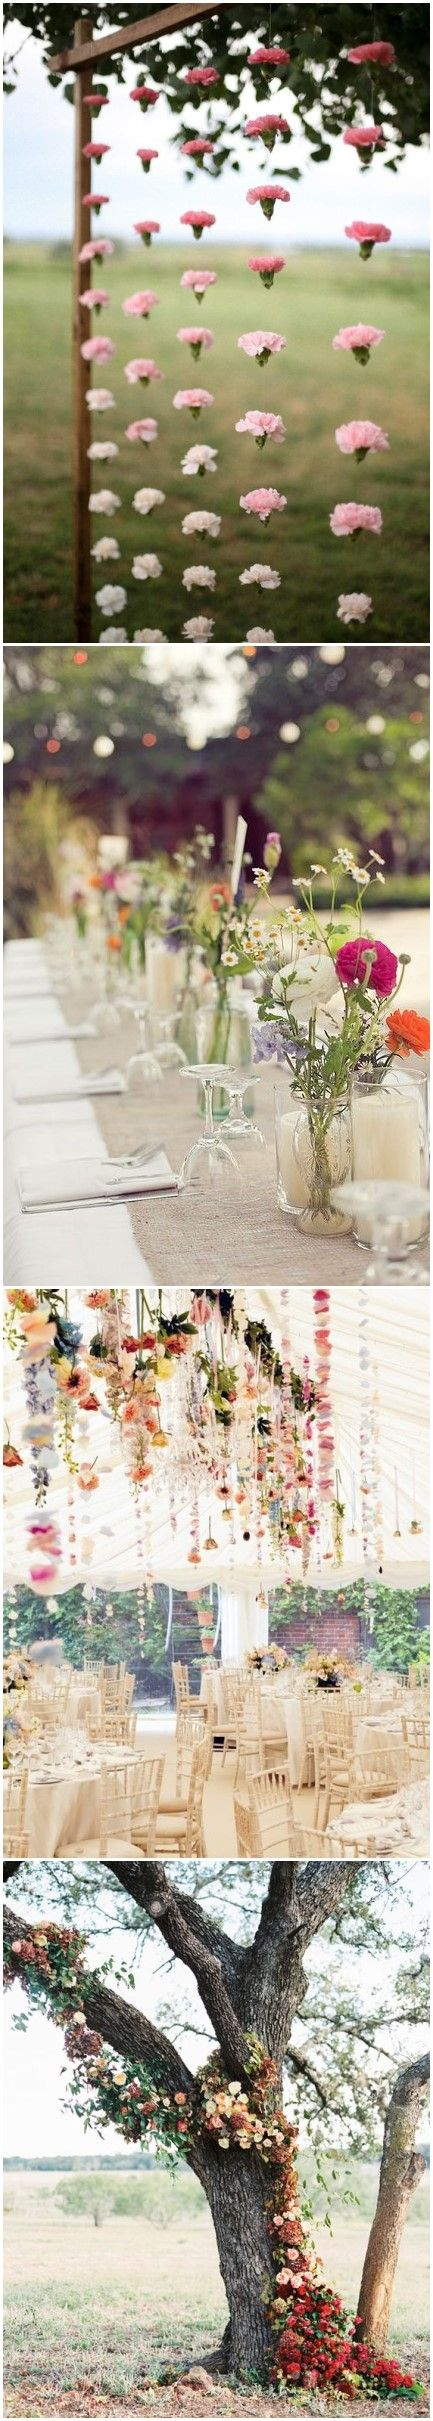 COLORED GLASS Wedding Ideas » 20+ Gorgeous Boho Wedding Décor Ideas on Pinterest » ❤️ See more: http://www.weddinginclude.com/2017/05/boho-wedding-decor-ideas-on-pinterest/